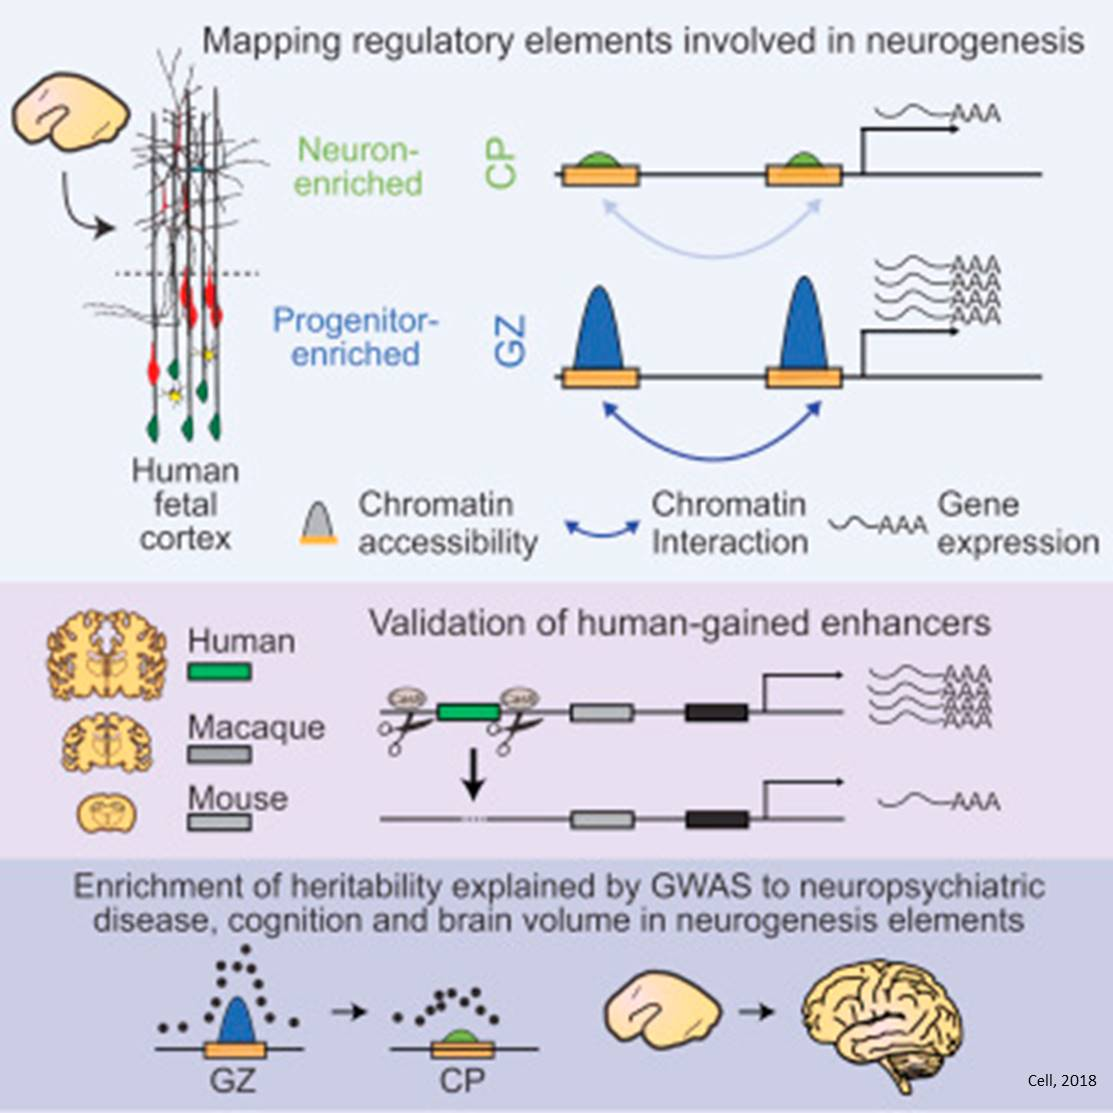 A person's future intellectual capabilities may be set in motion during neurogenesis